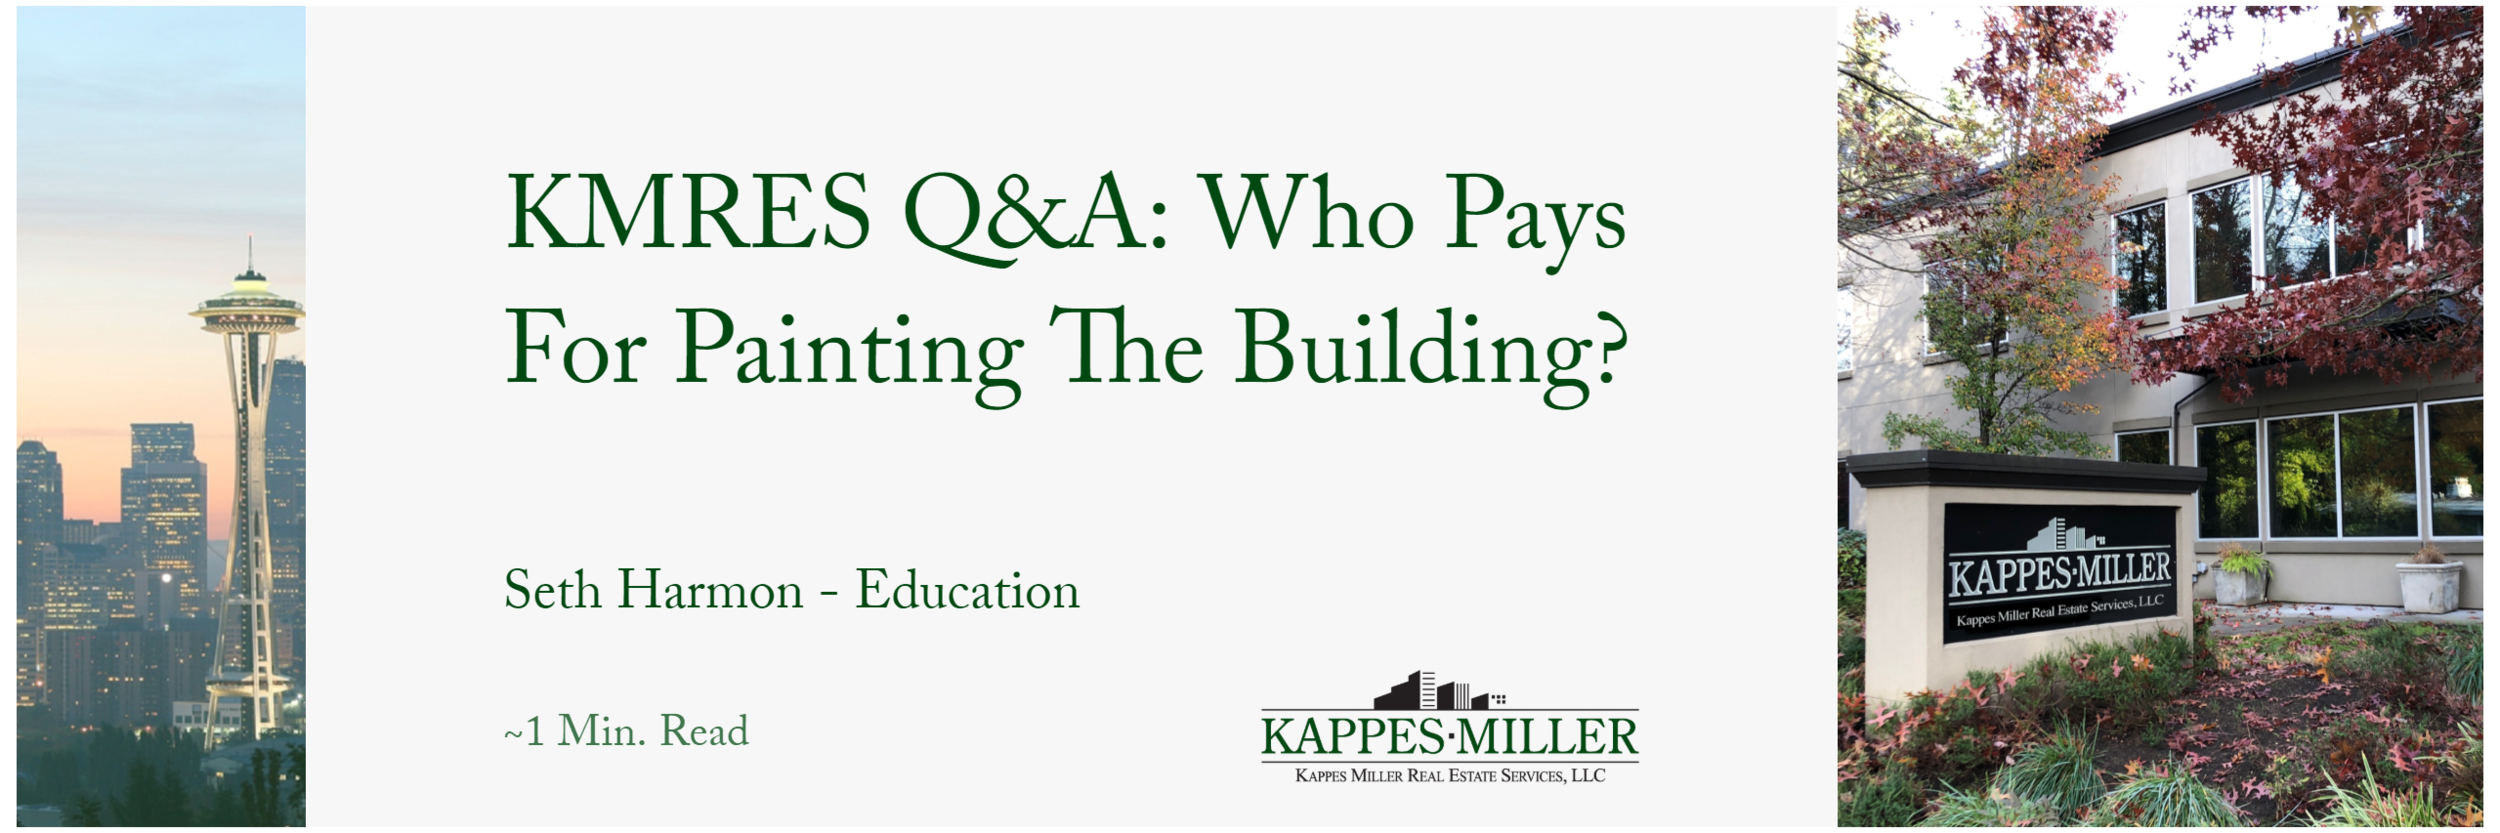 KMRES Q&A - Who Pays For Painting The Building Blog.png